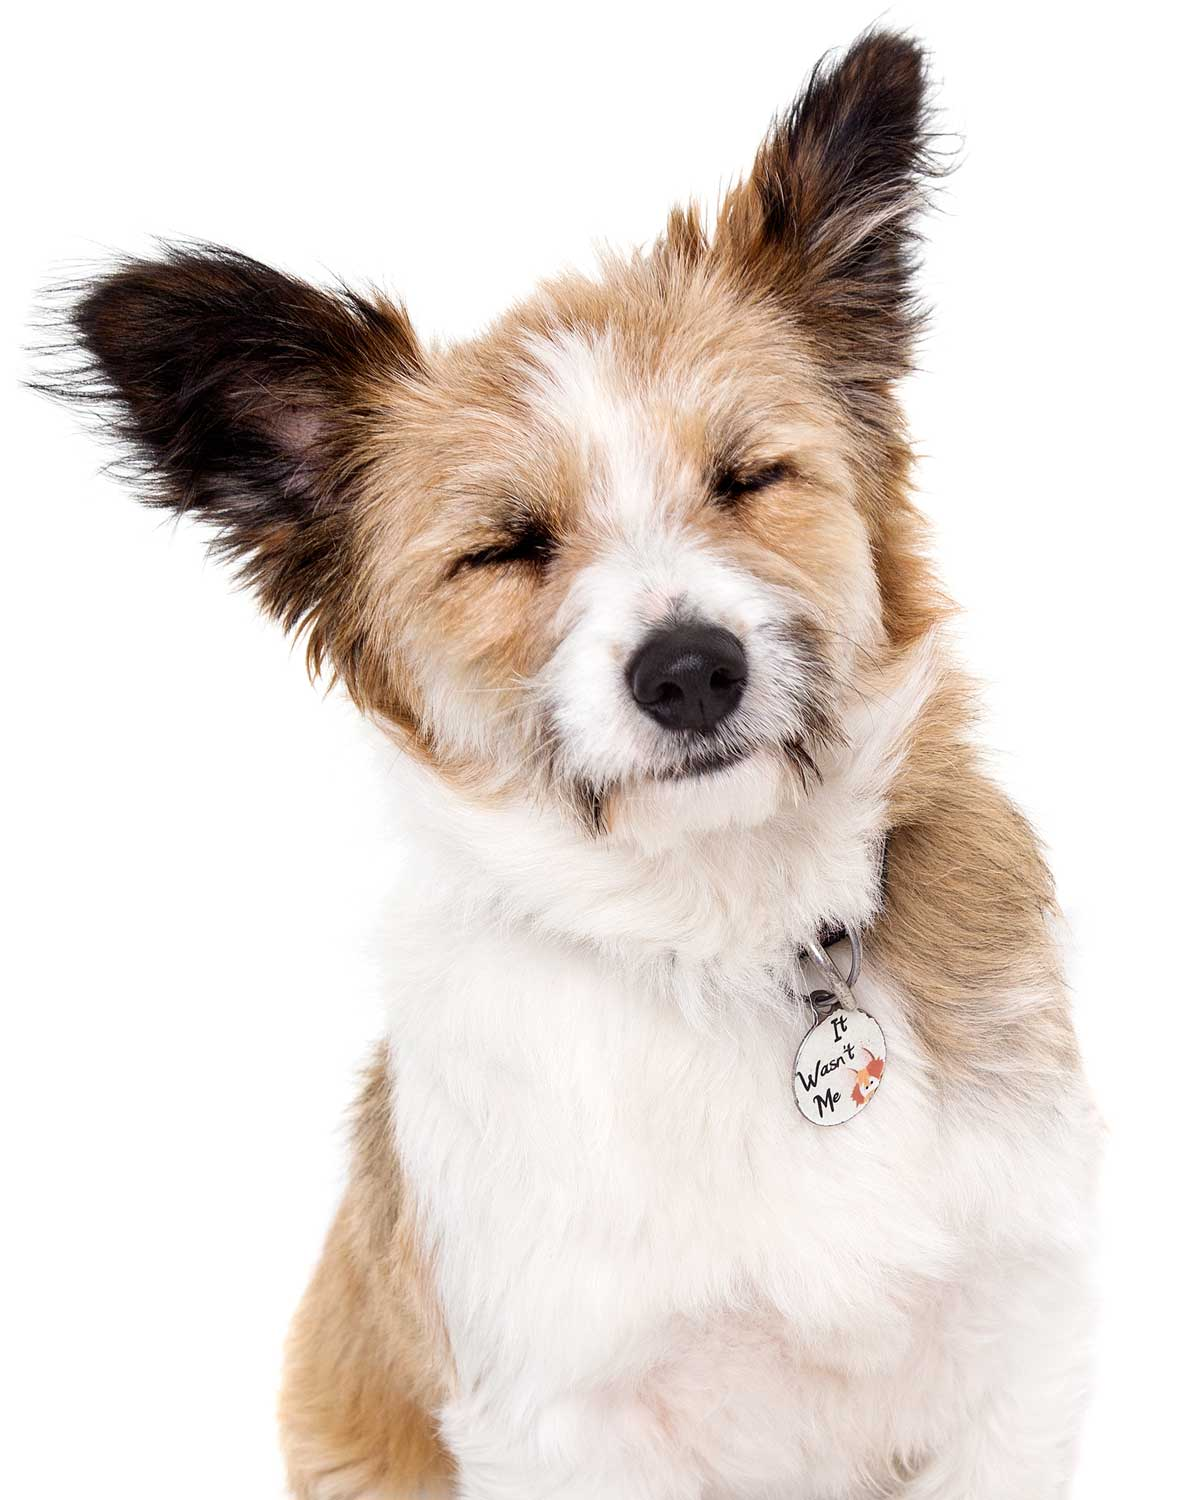 14-Pets-Dog-Brown-White-Eyes-Closed-Tired-Philip-Murray-Photography-Dublin